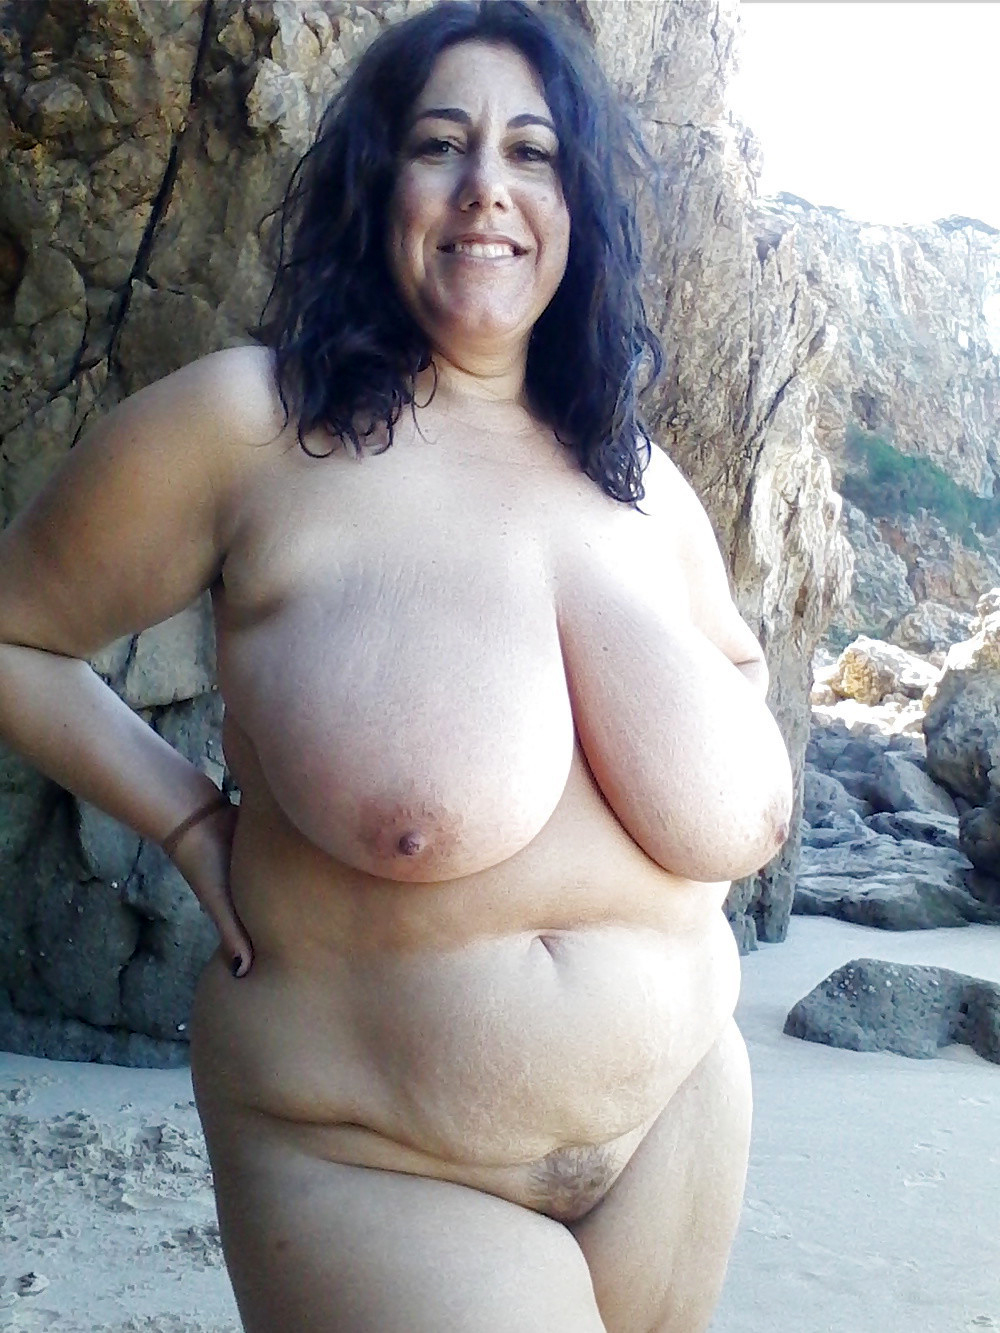 Abstract woman chubby mature naked remarkable, this valuable